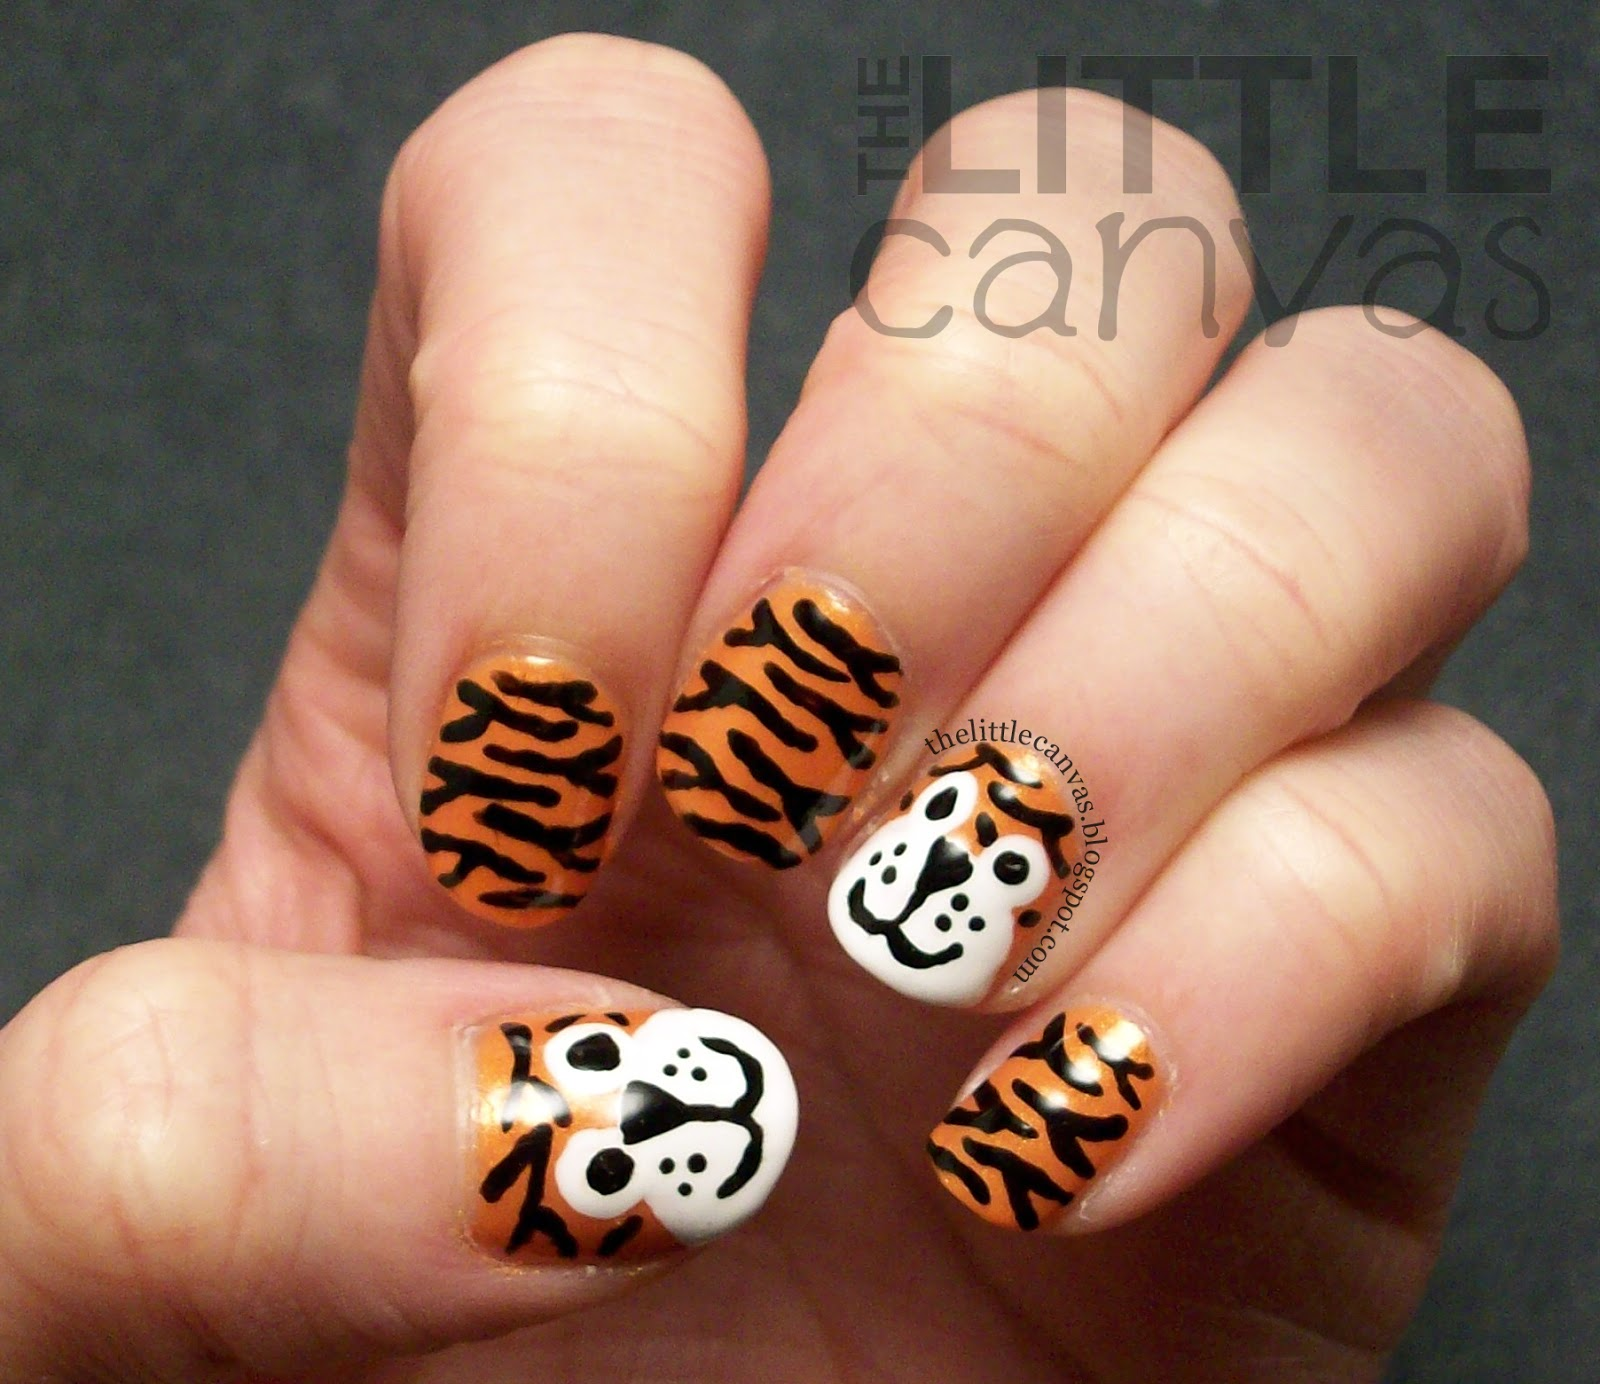 Tiger Nail Art Re-Visited - The Little Canvas